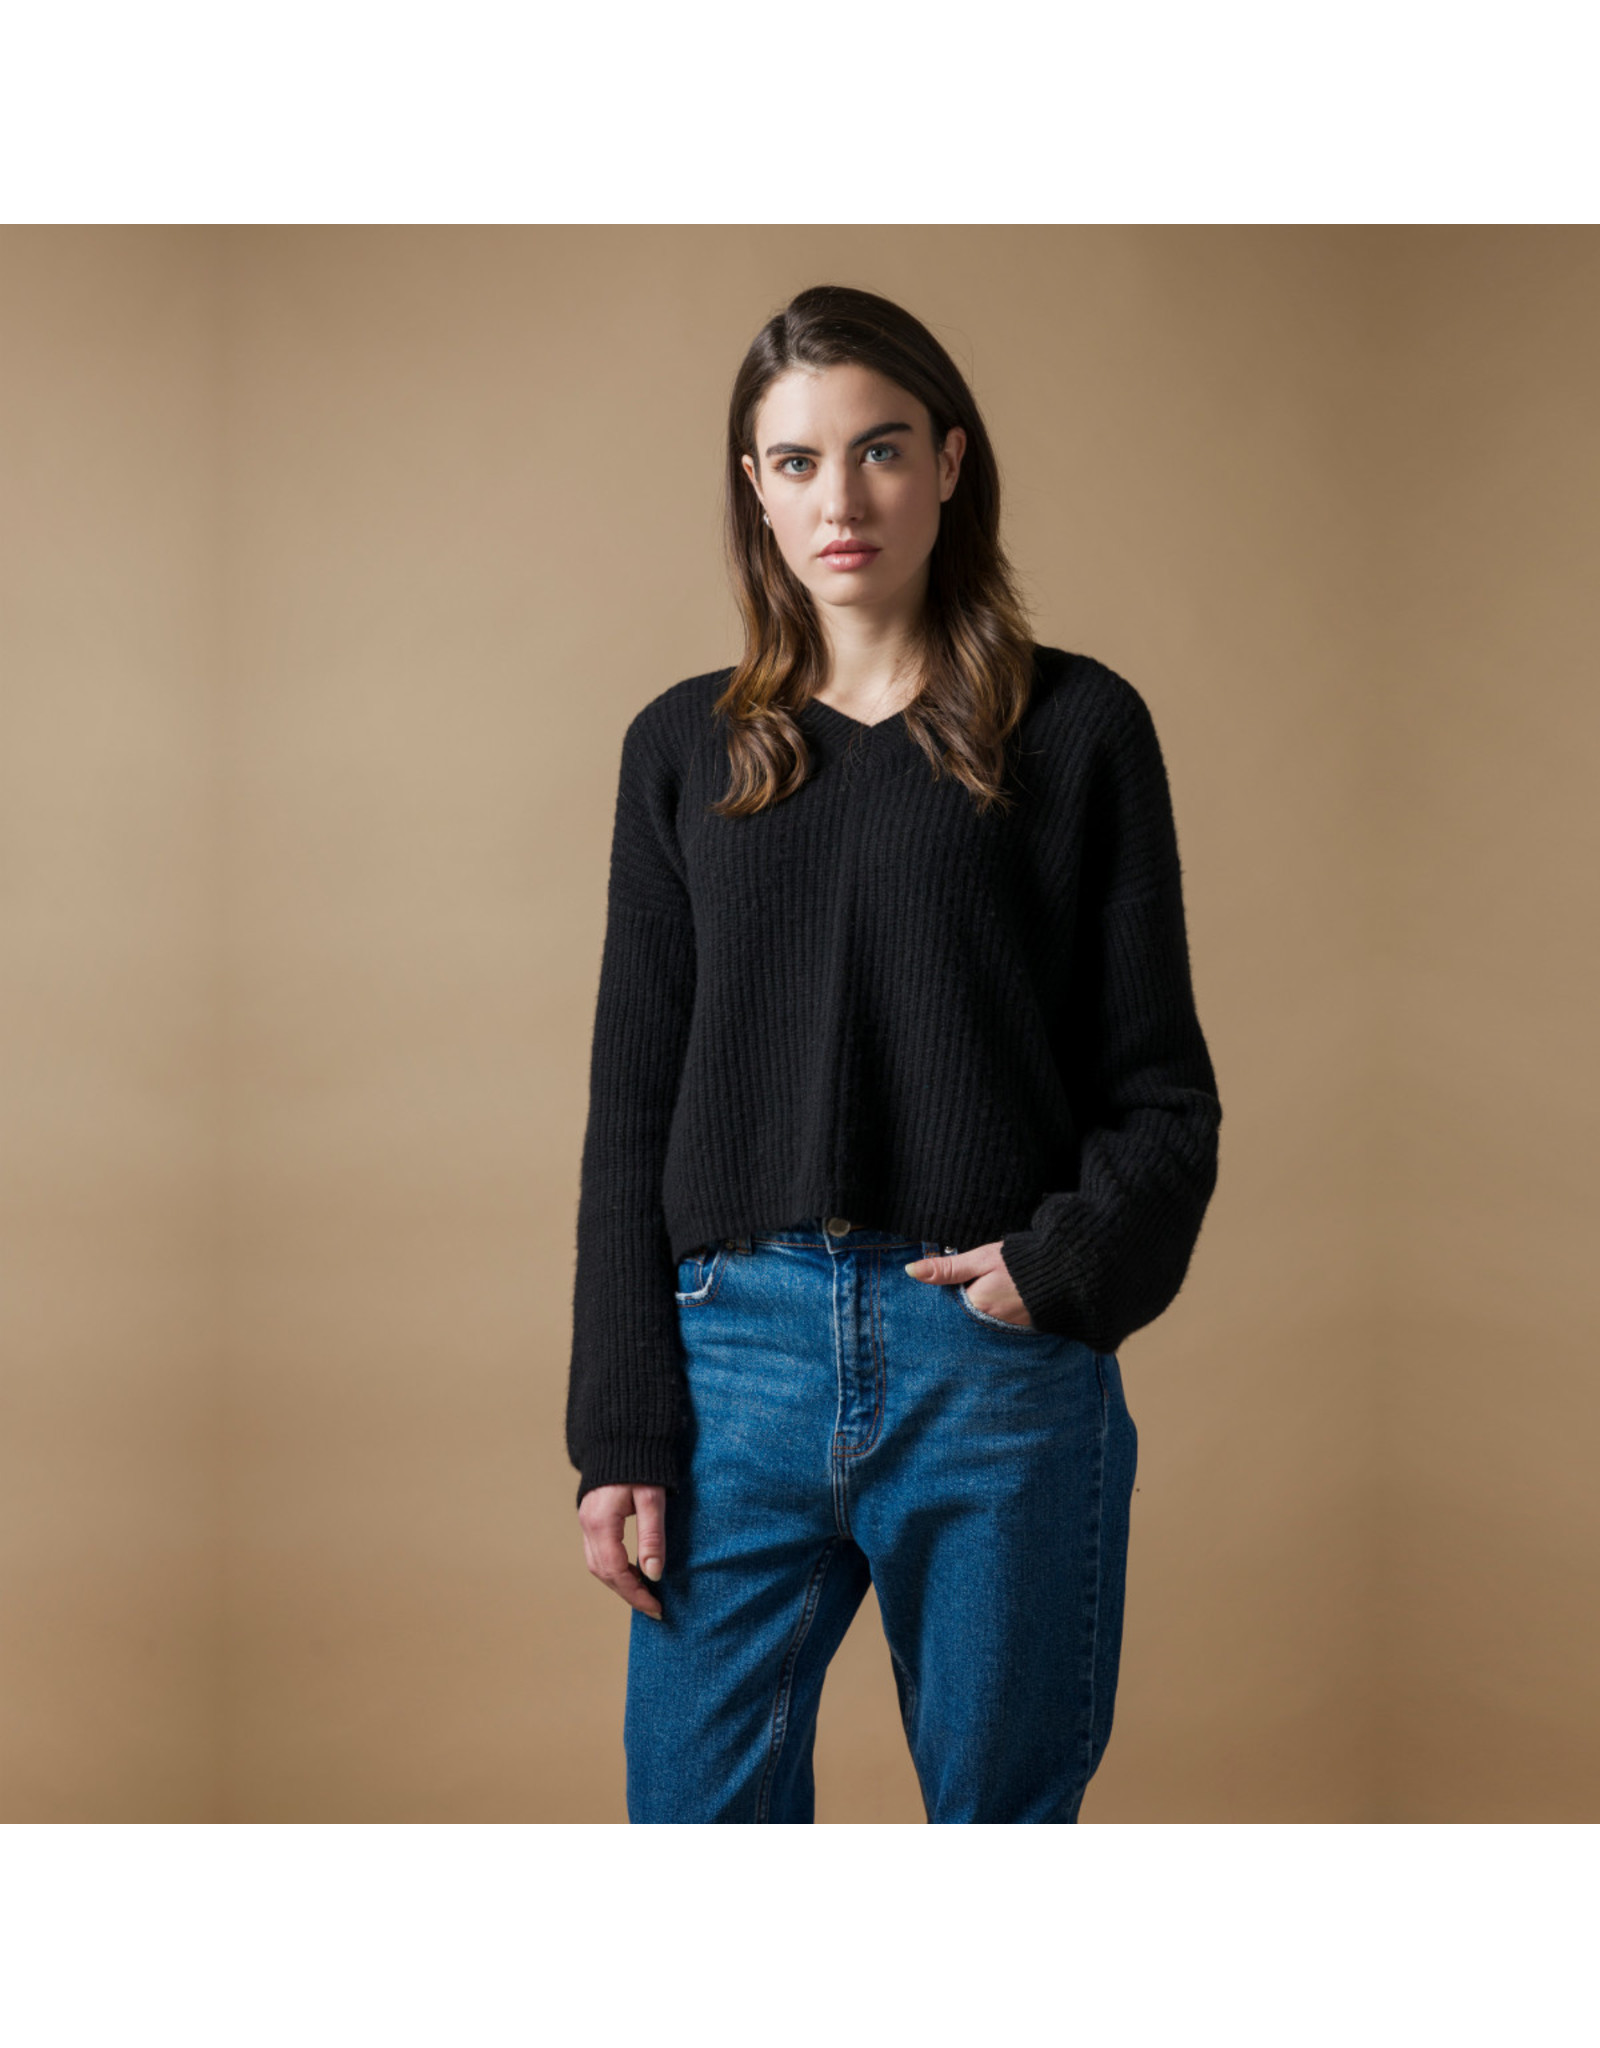 Rifò Recycled Cashmere Wool Sweater - Luisa